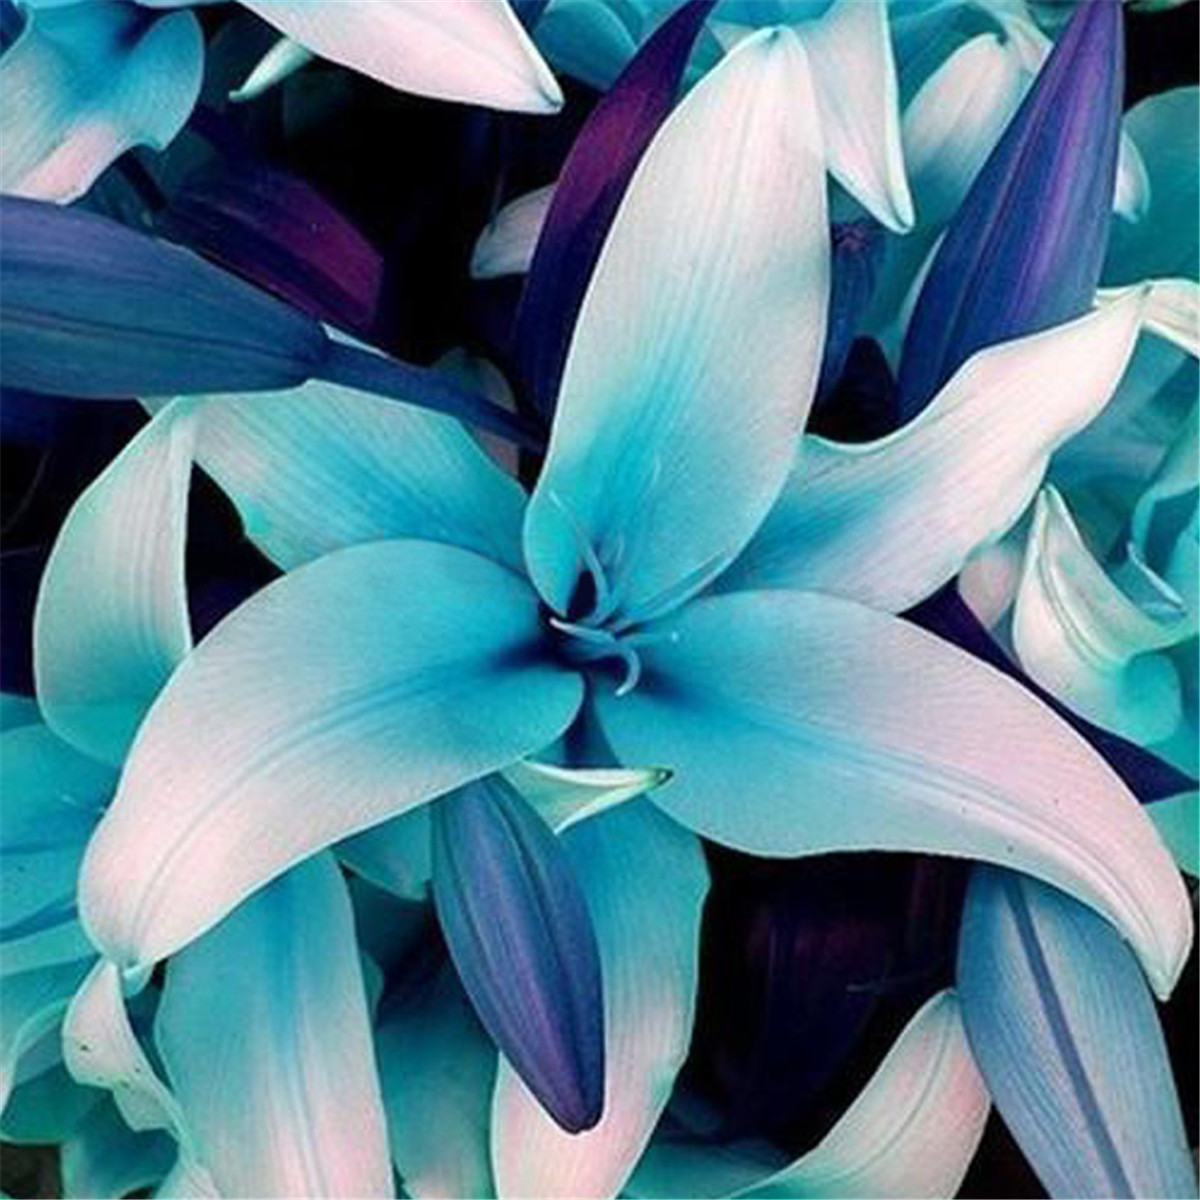 50pcs blue rare lily bulbs seeds planting flower lilium perfume 50pcs blue rare lily bulbs seeds planting flower lilium perfume garden decor izmirmasajfo